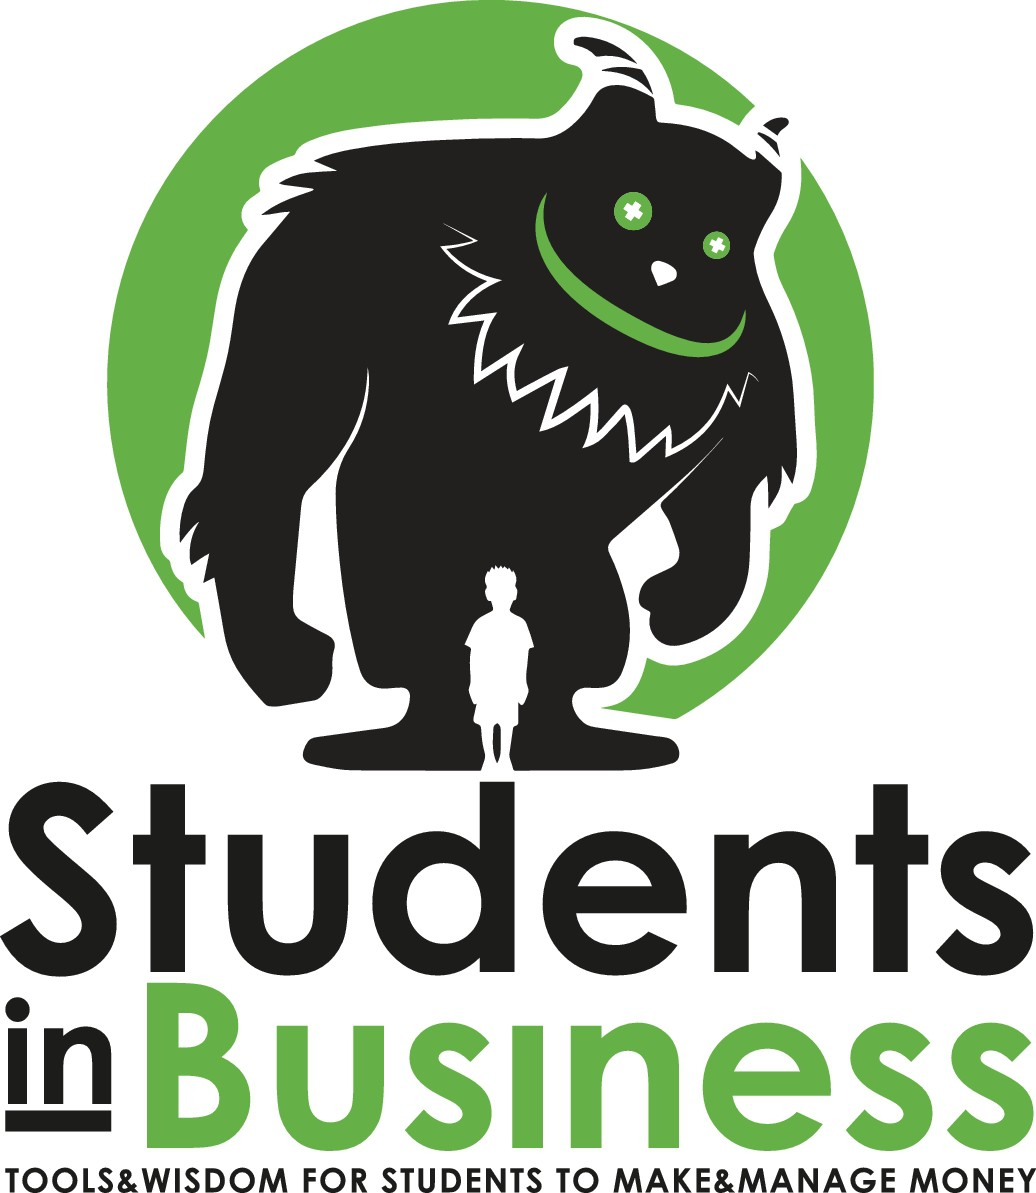 Students In Business searches for a POWERFUL and CONNECTING LOOK&FEEL/LOGO